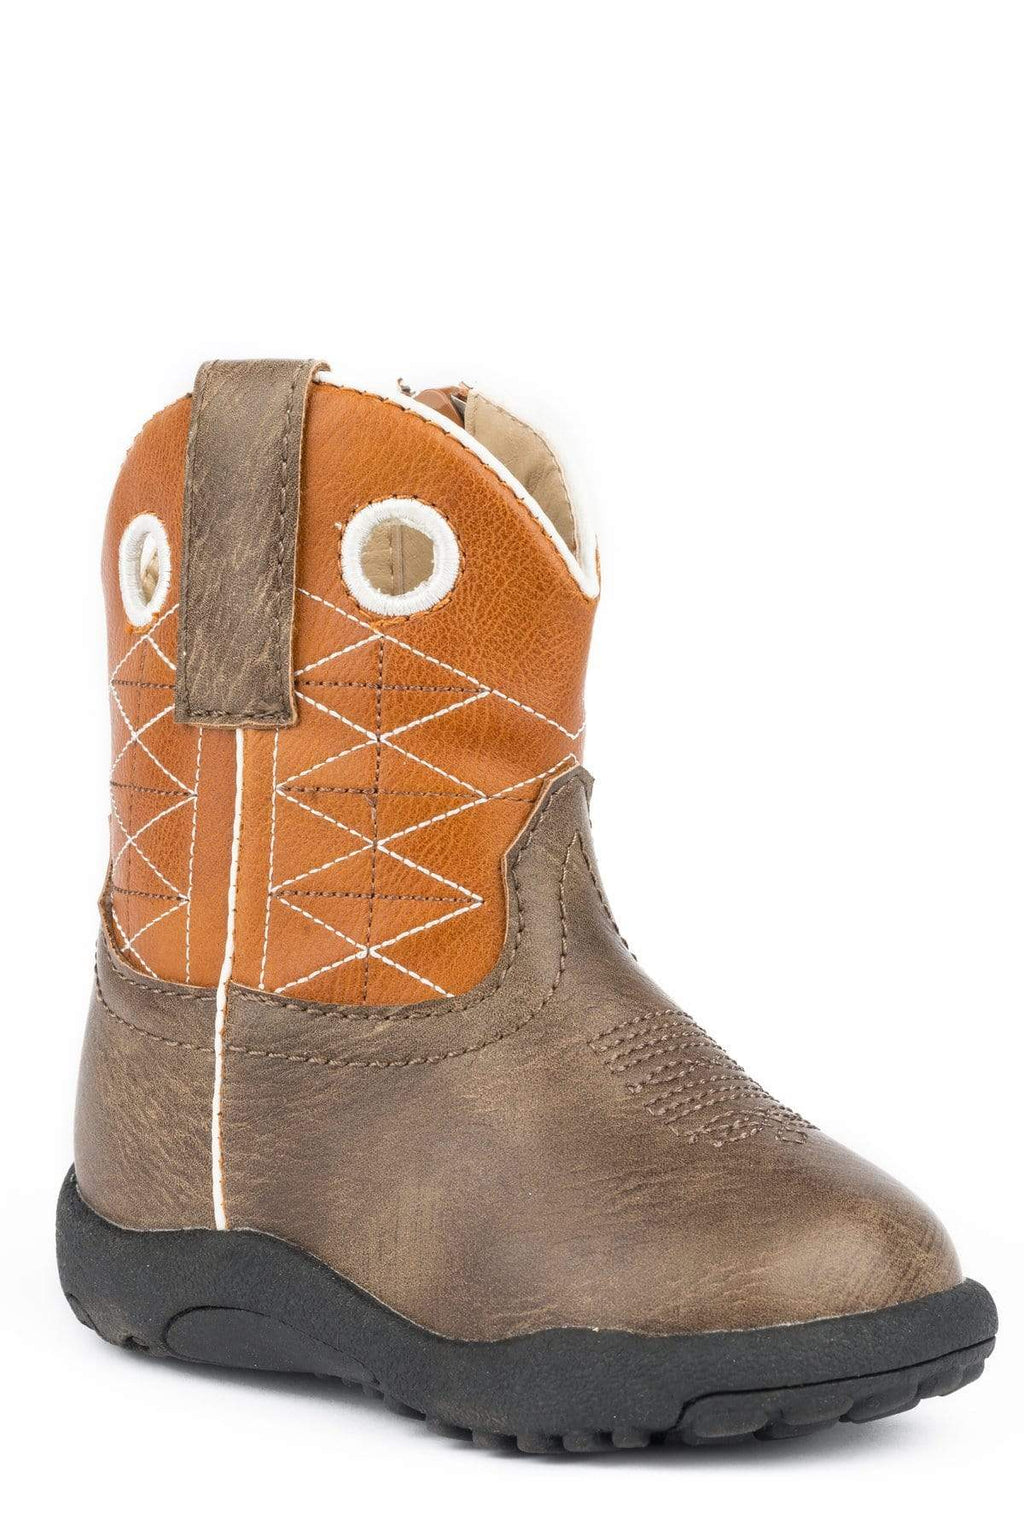 Gympie Saddleworld & Country Clothing Baby Cowkids 1 (0-3 Months) / Brown Roper Infants Boone- Brown Boots